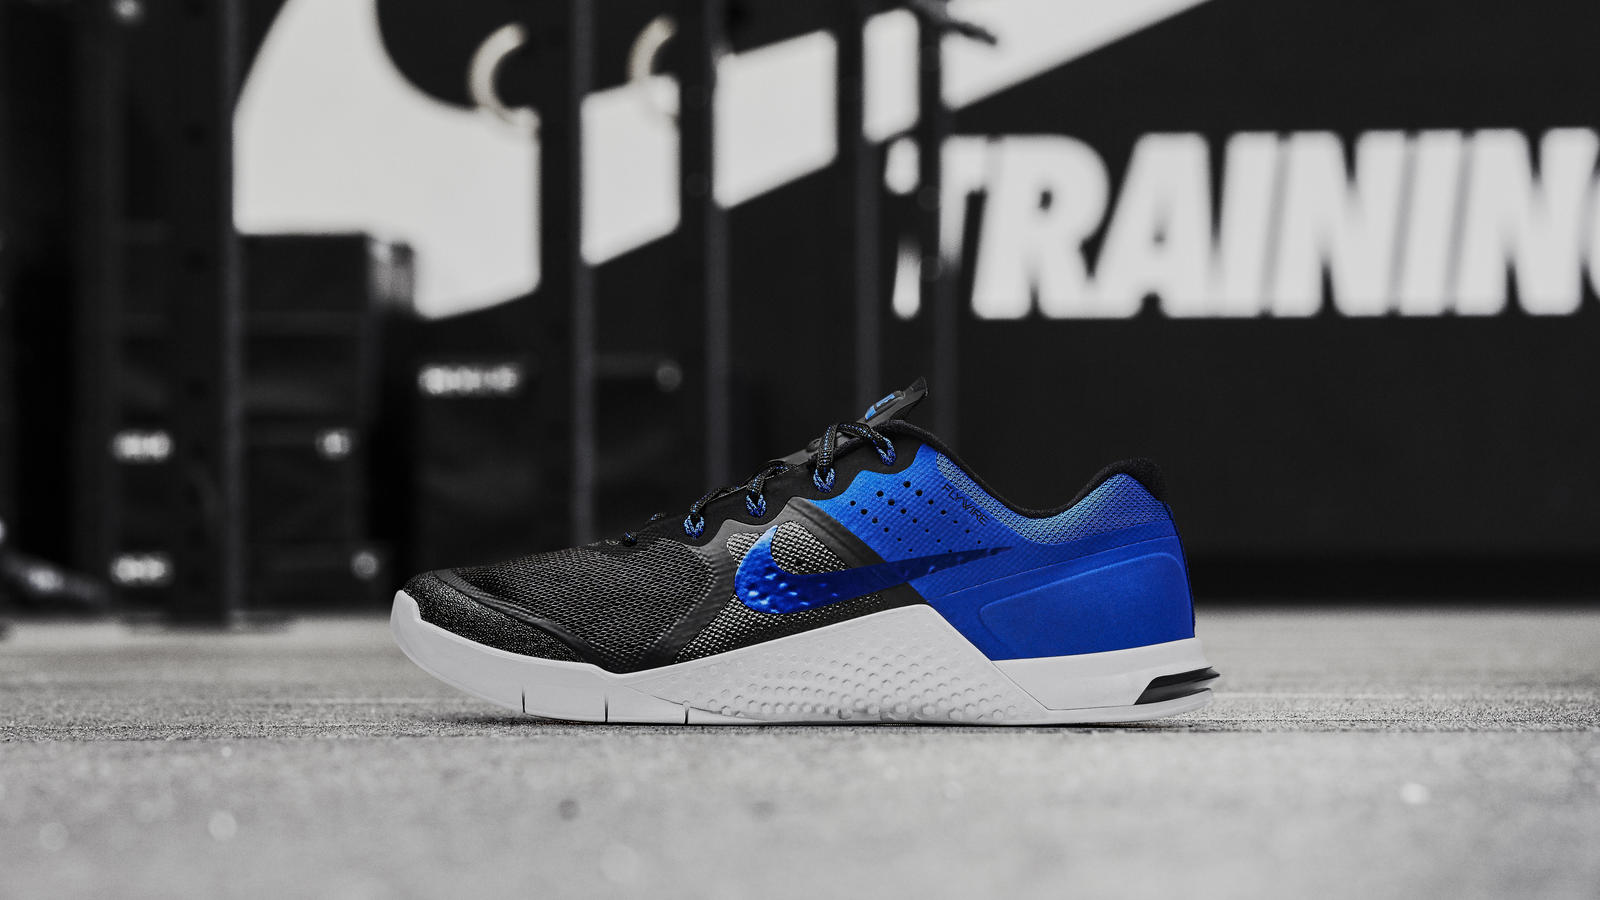 Nike news sneaker feed metcon2 blue blk 2643 hd 1600